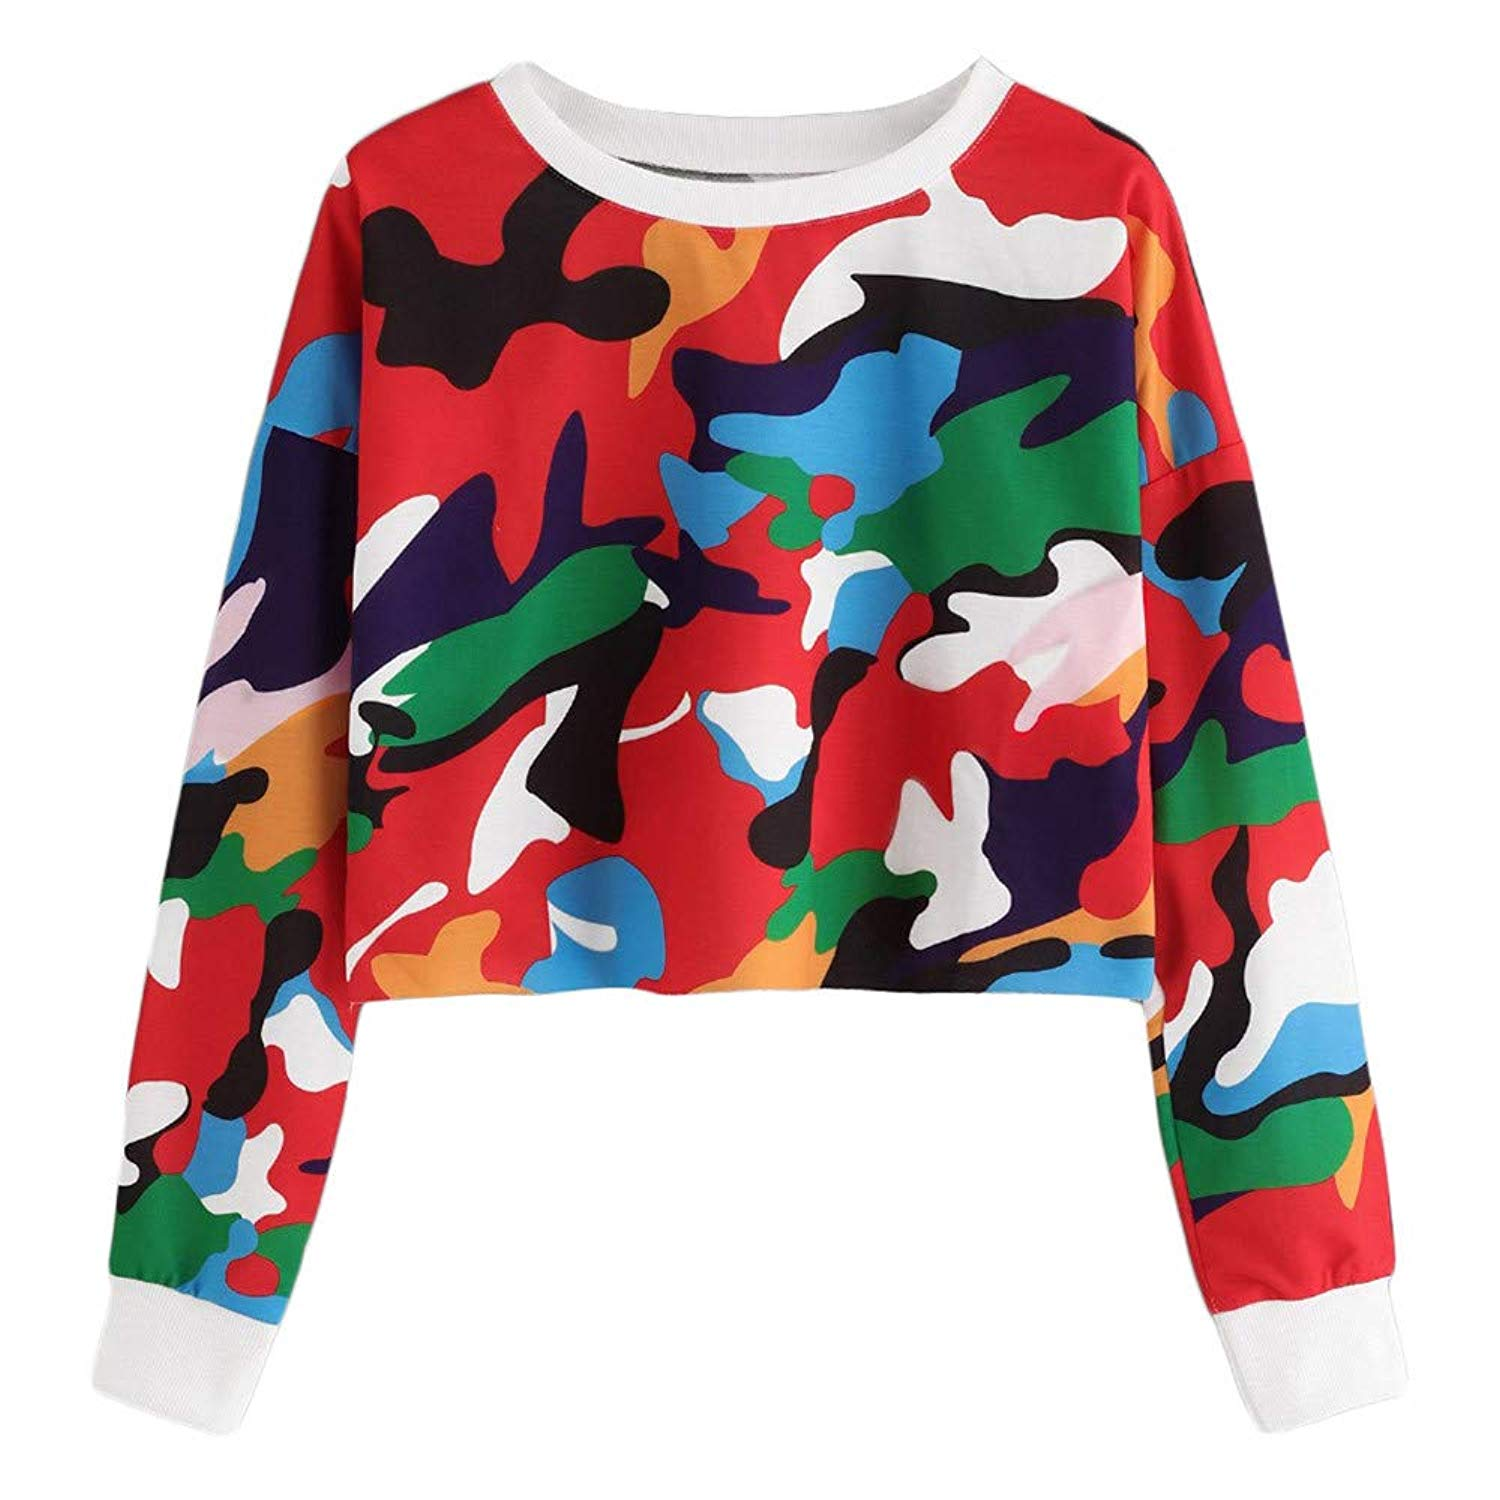 Snowfoller Colourful Camouflage Sweatshirt,Women Casual Long Sleeve Short Crop Tops Fashion Crew Neck Pullover Blouse